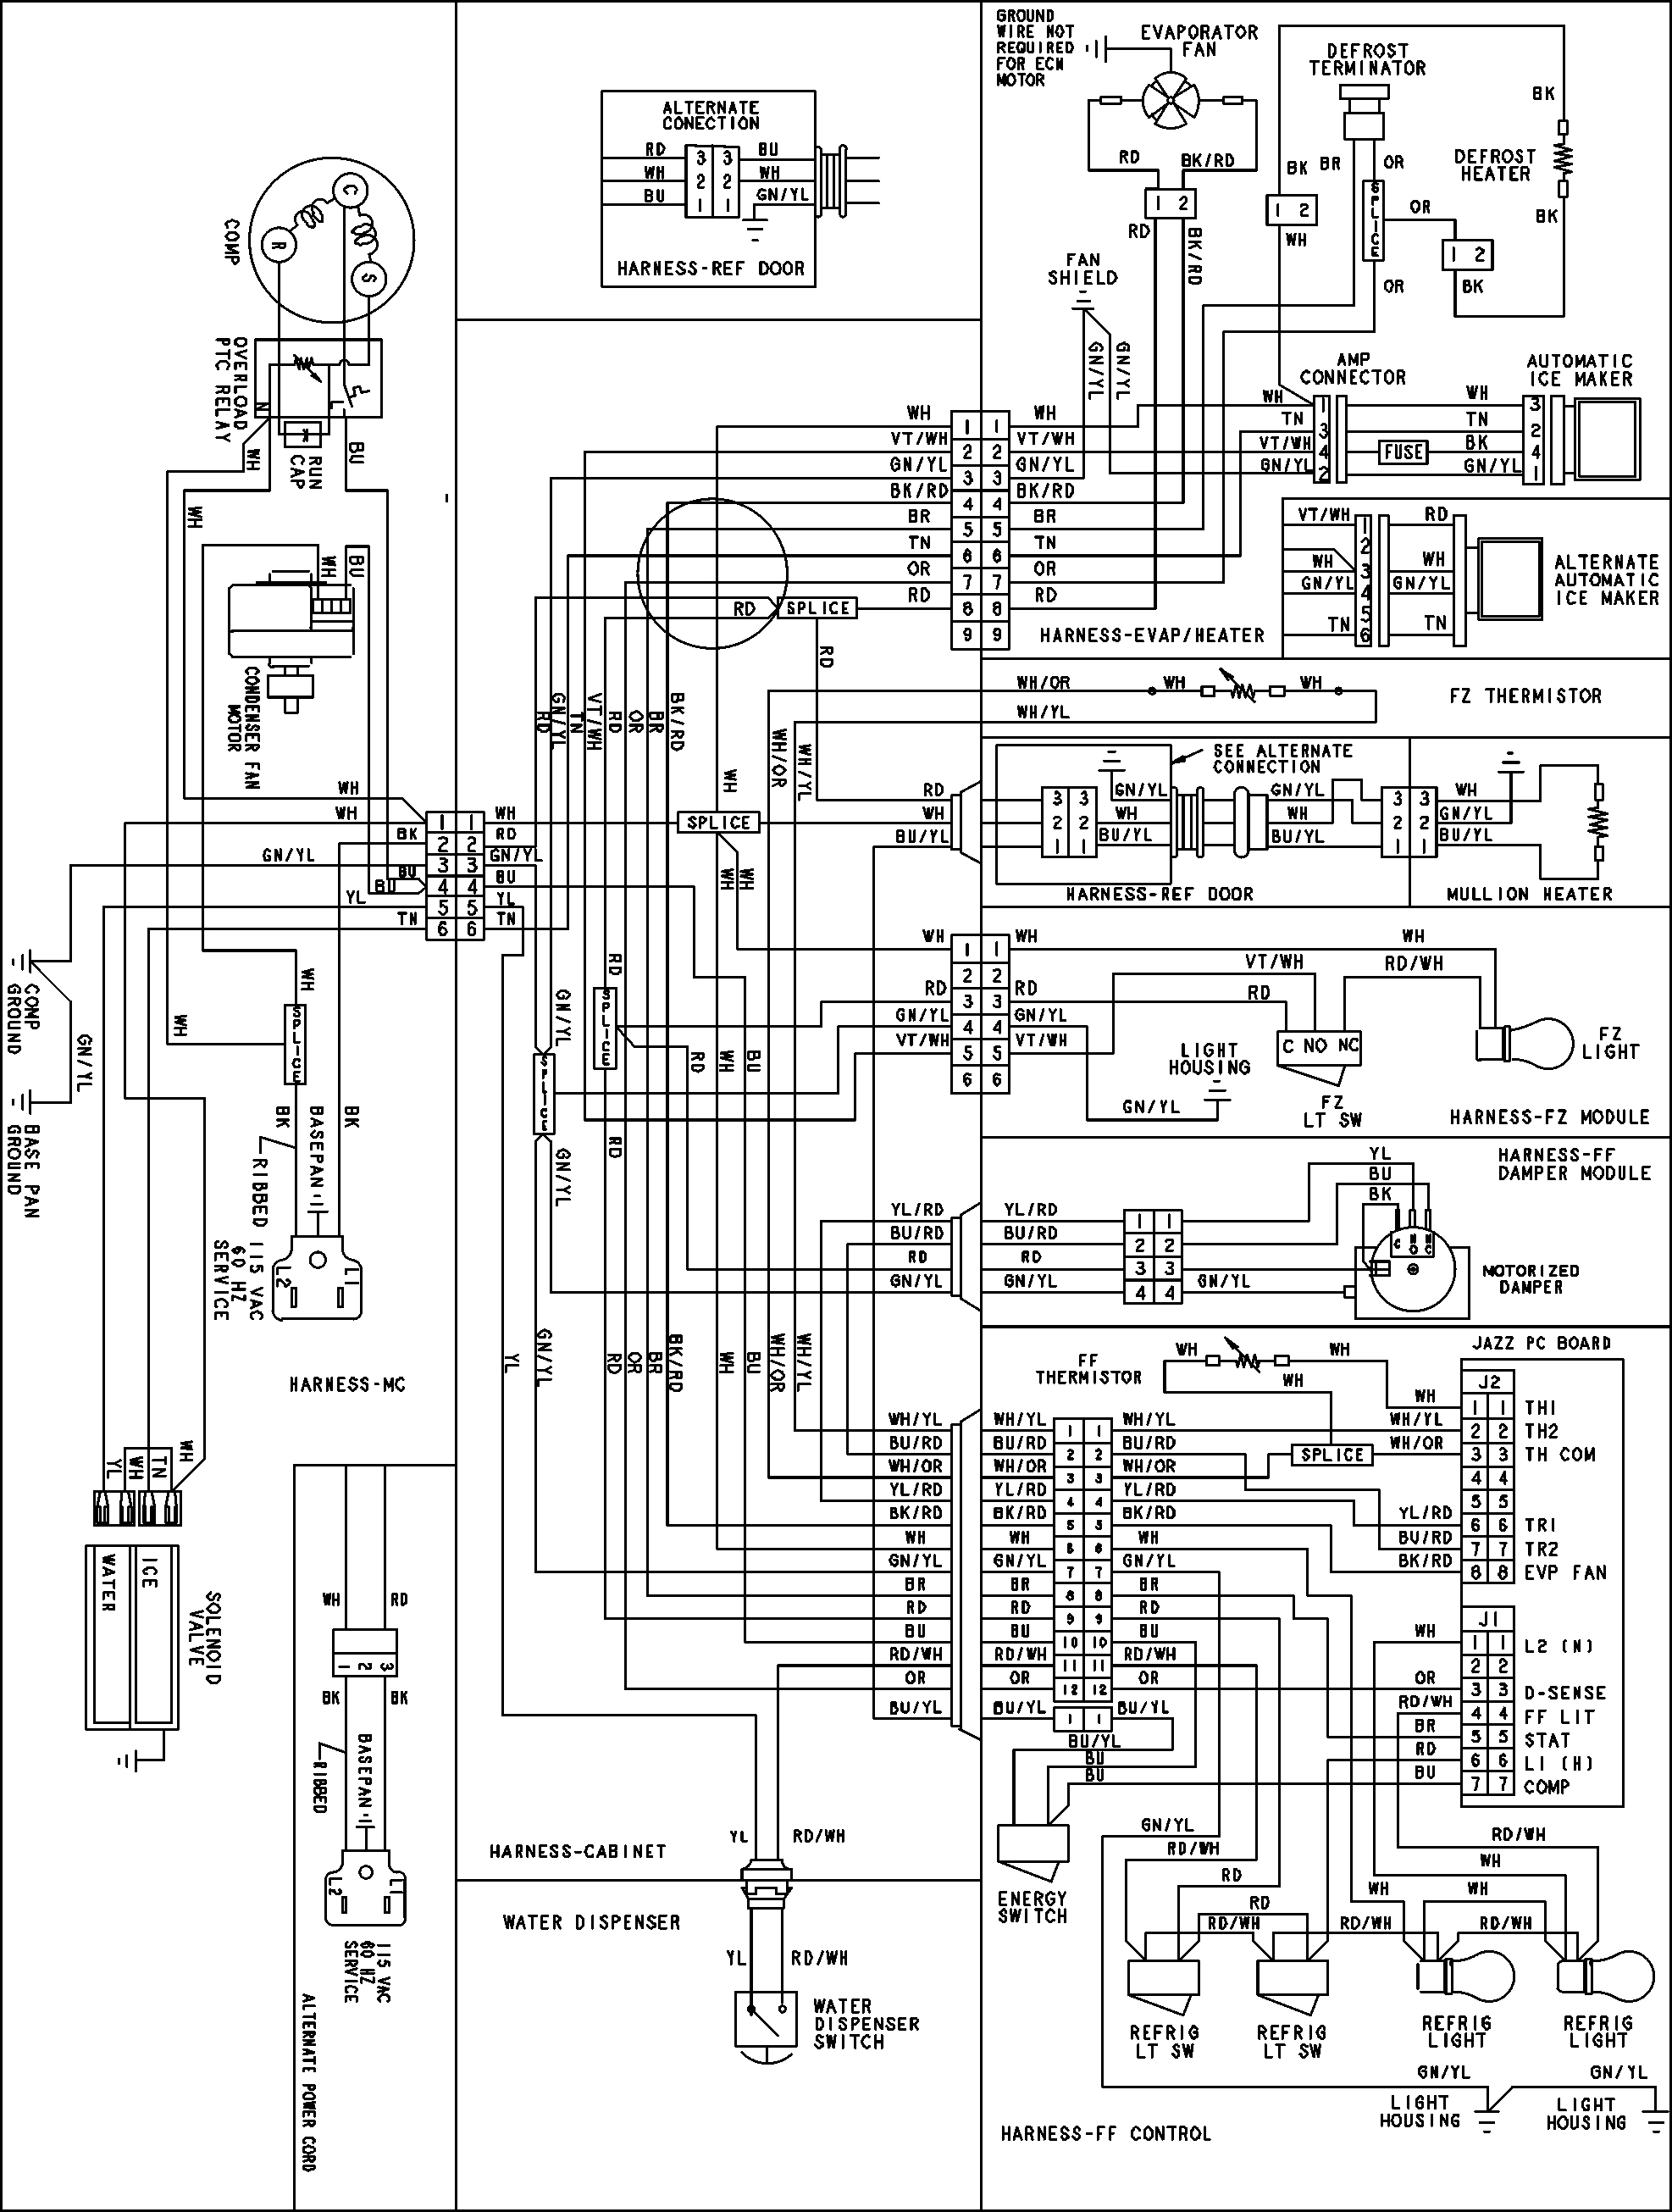 Simple Refrigerator Wiring Diagram